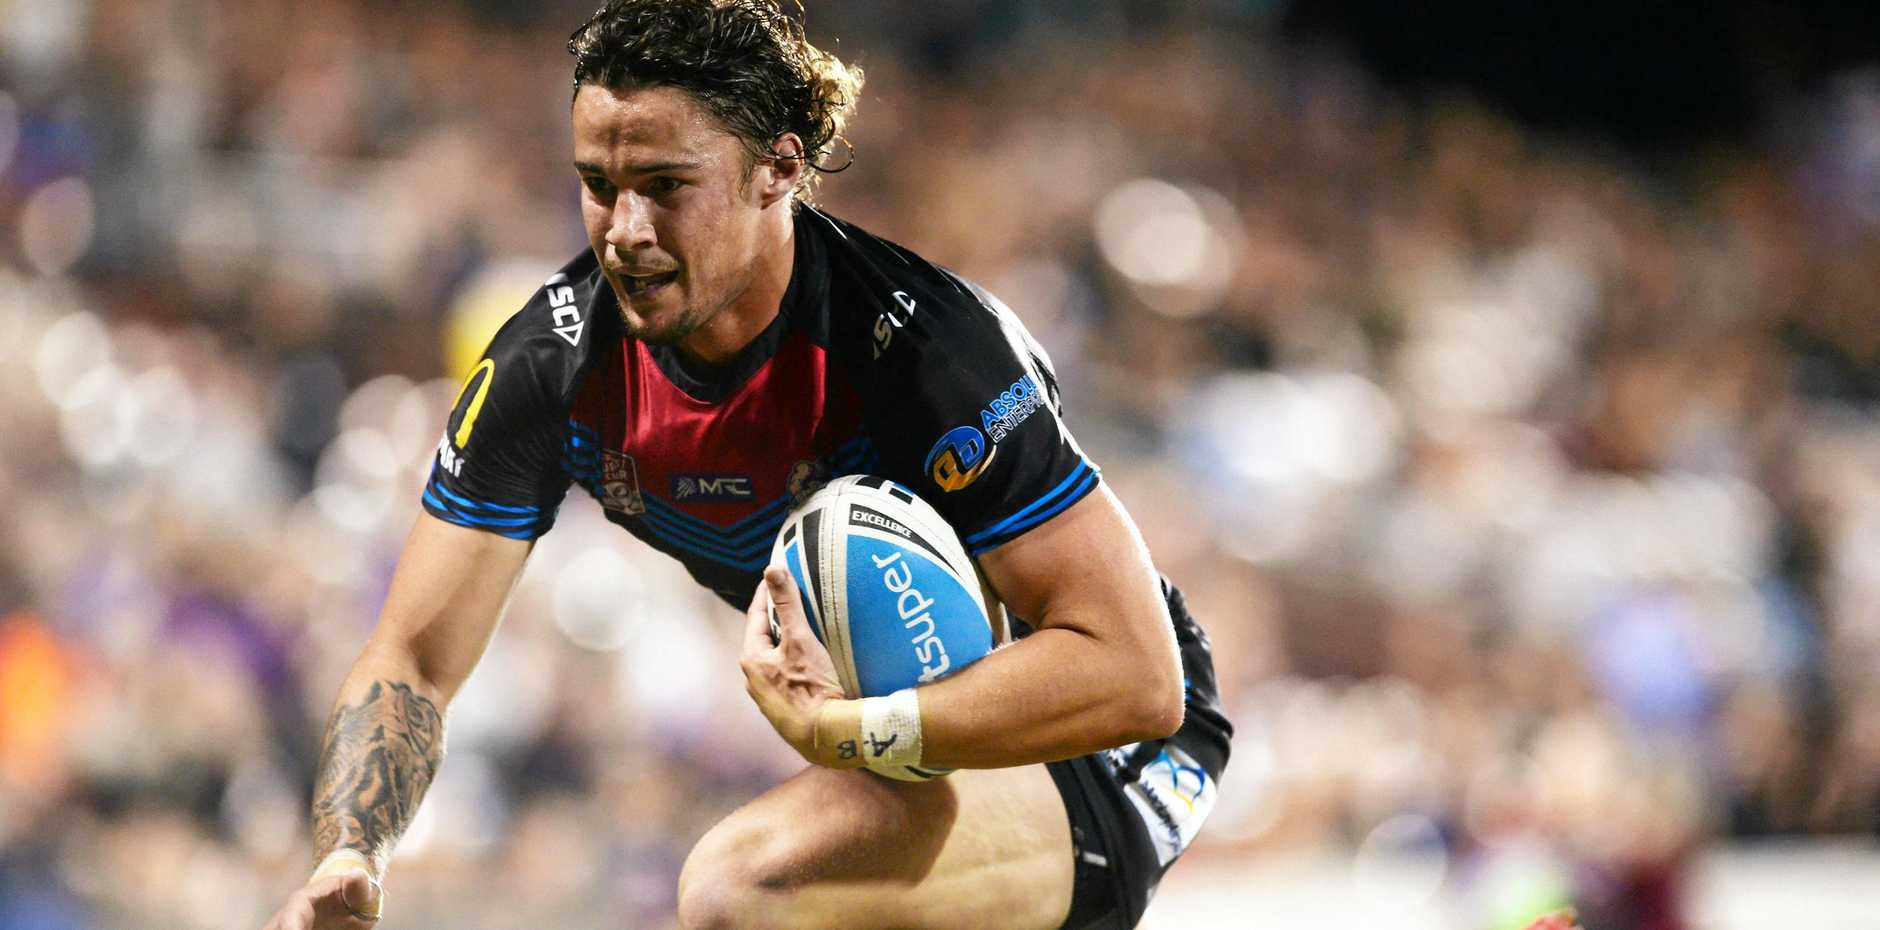 Talented five-eighth Nicho Hynes will join Falcons HQ from the Mackay Cutters.